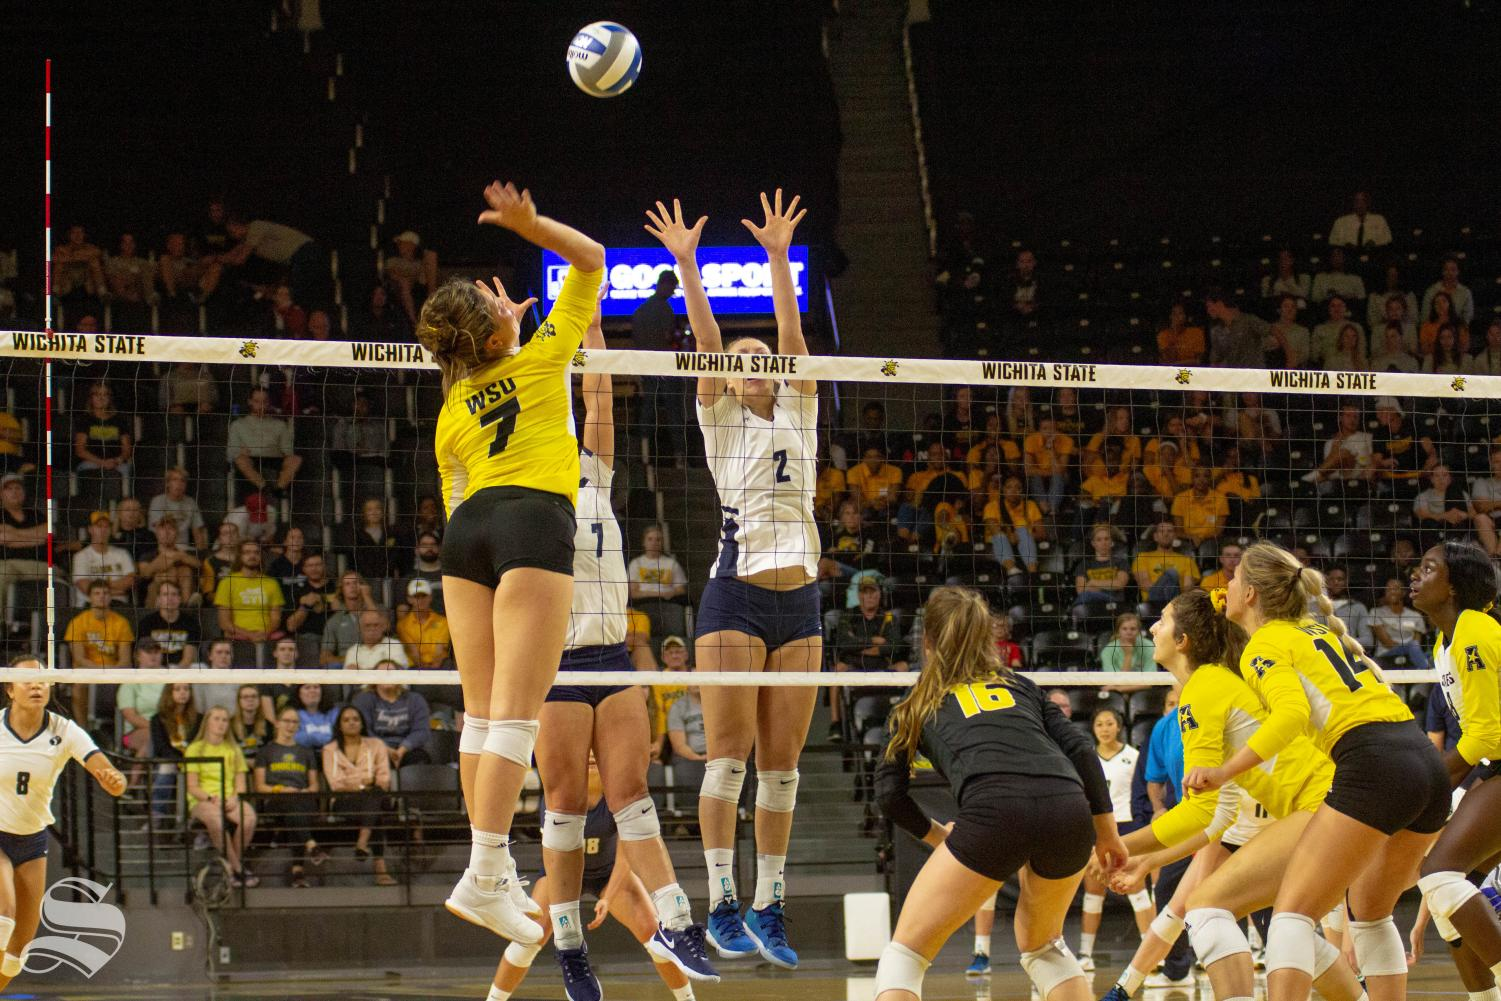 Wichita+State+freshman+Nicole+Anderson+goes+up+for+a+kill+during+WSU%27s+home+opener+against+BYU.